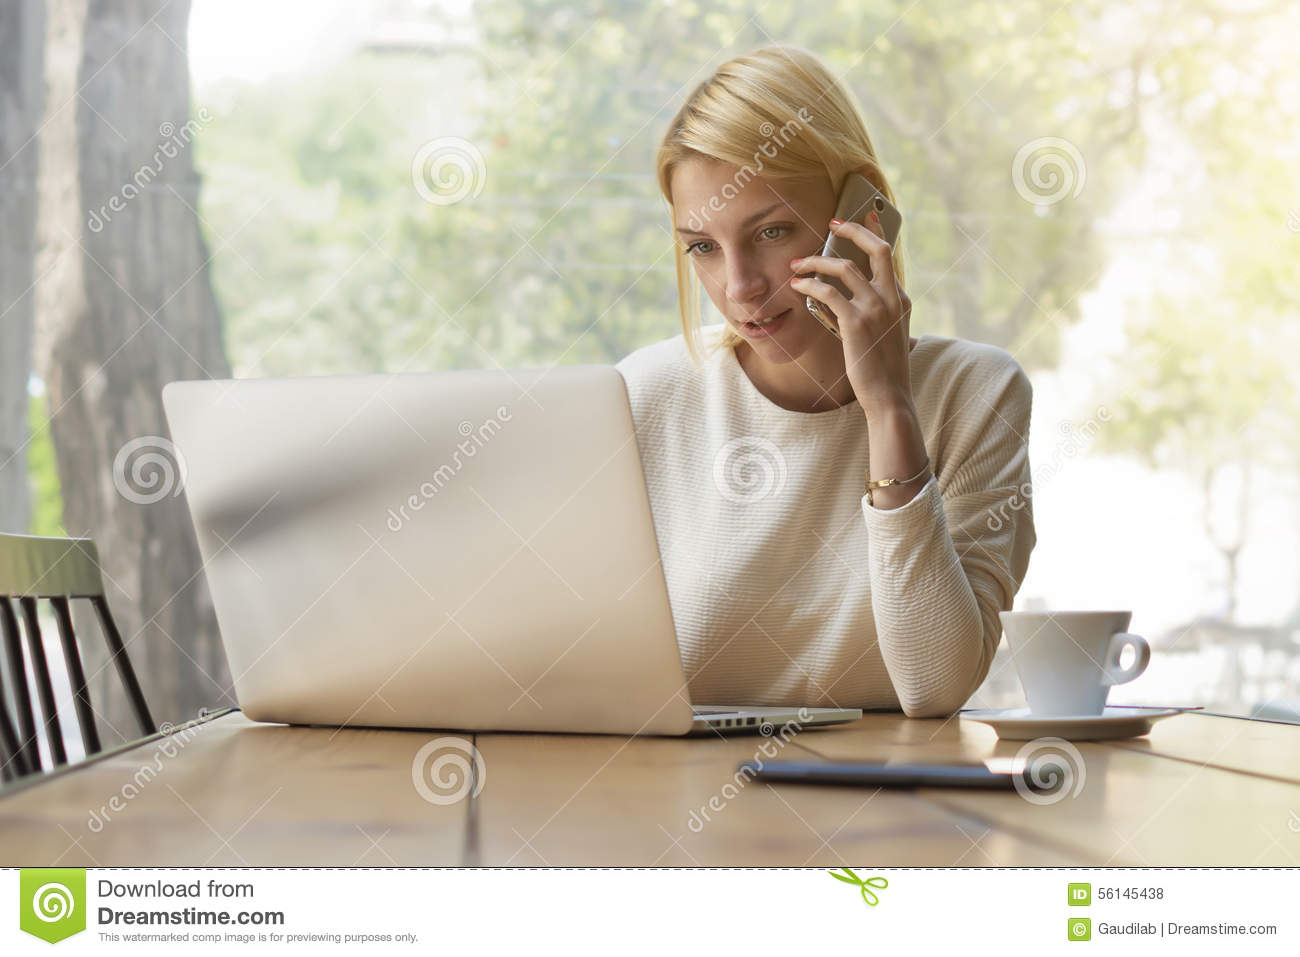 Female person busy working in modern office interior or coffee shop